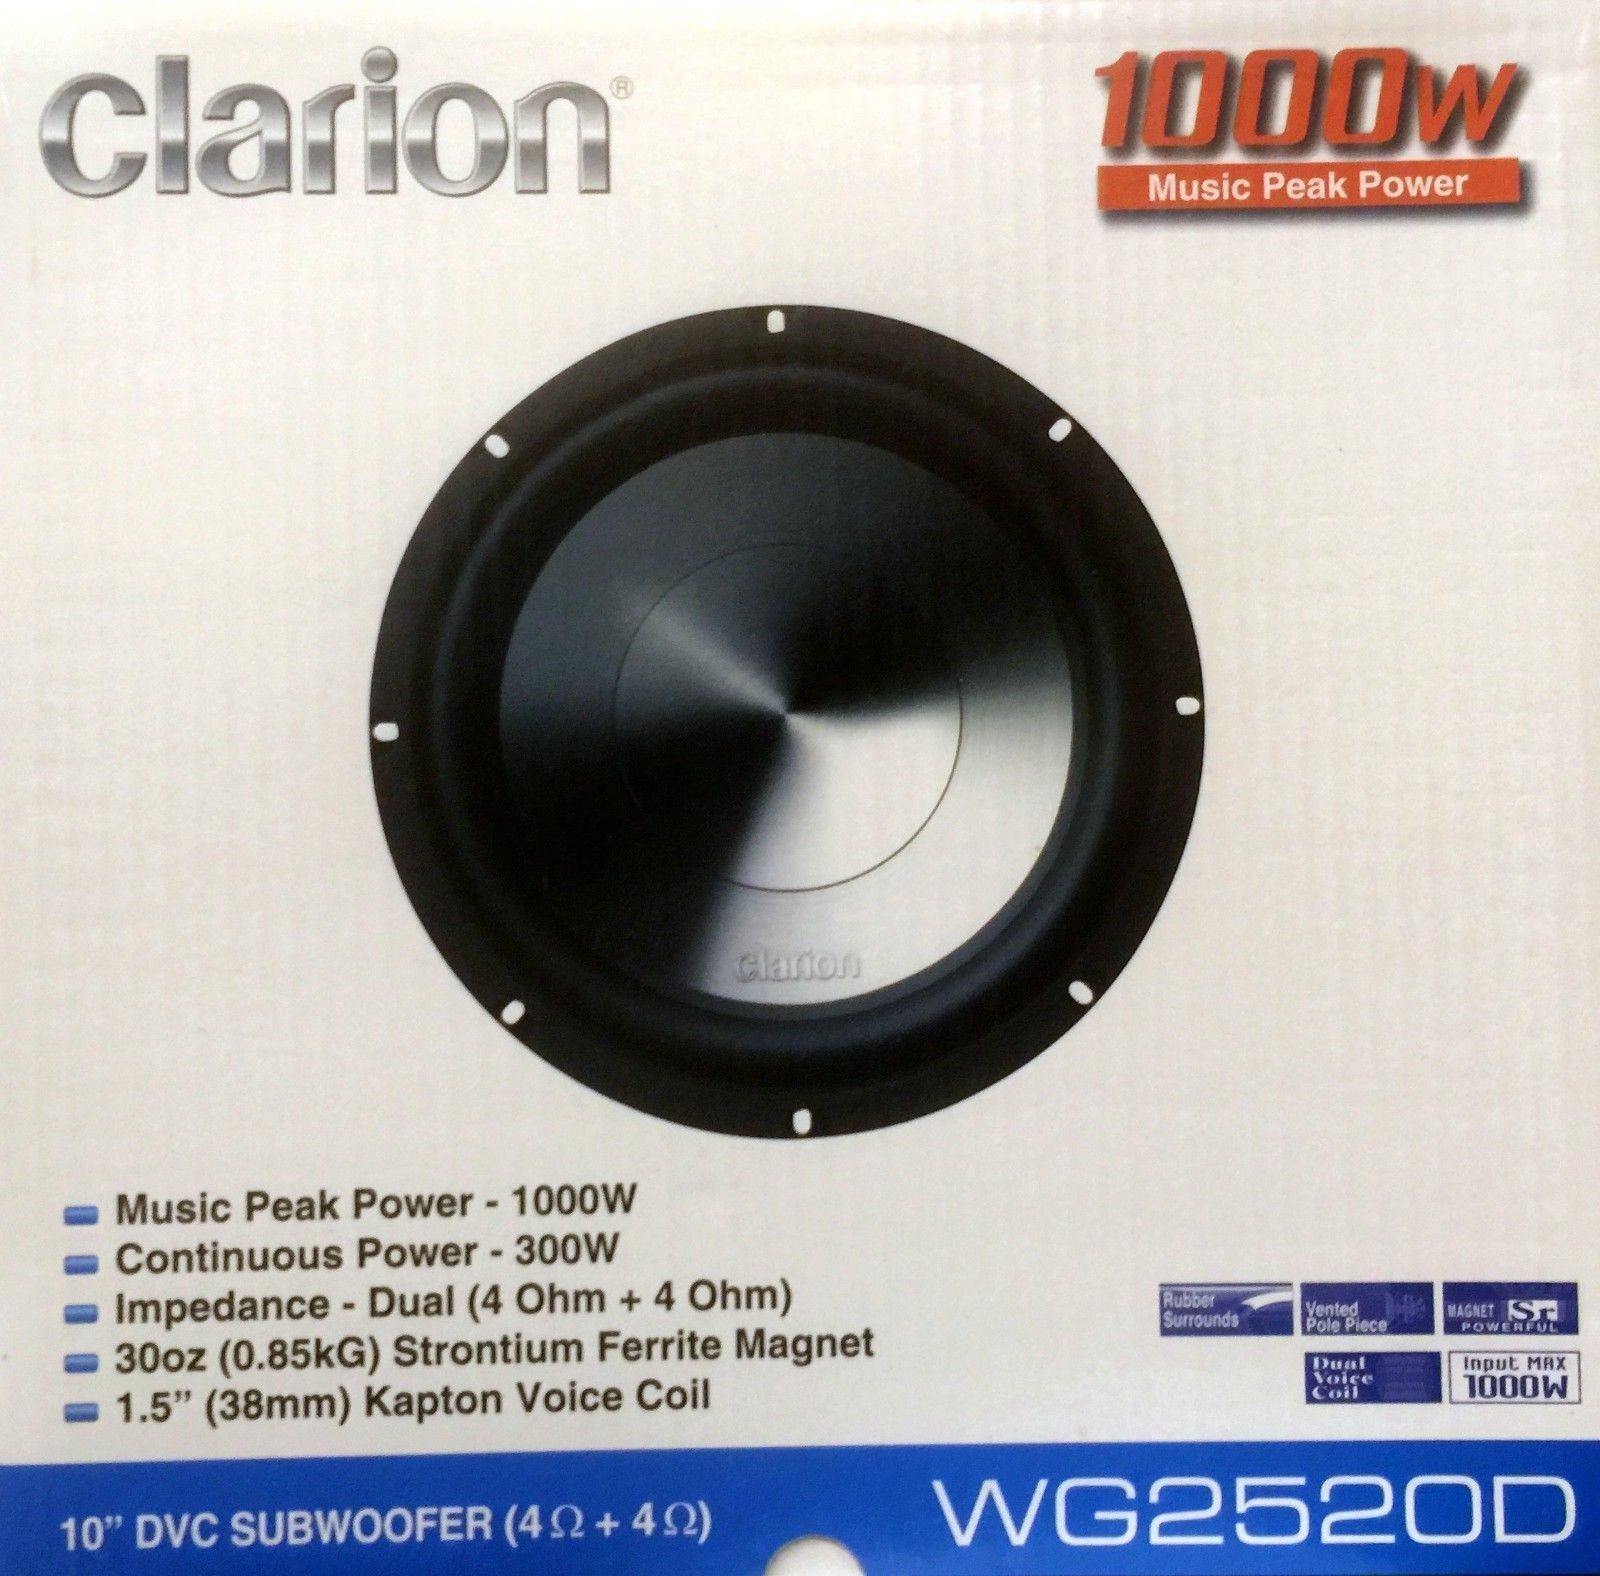 car subwoofers new clarion wgd wg series dual ohm car car subwoofers new clarion wg2520d 10 wg series dual 4 ohm car audio subwoofer buy